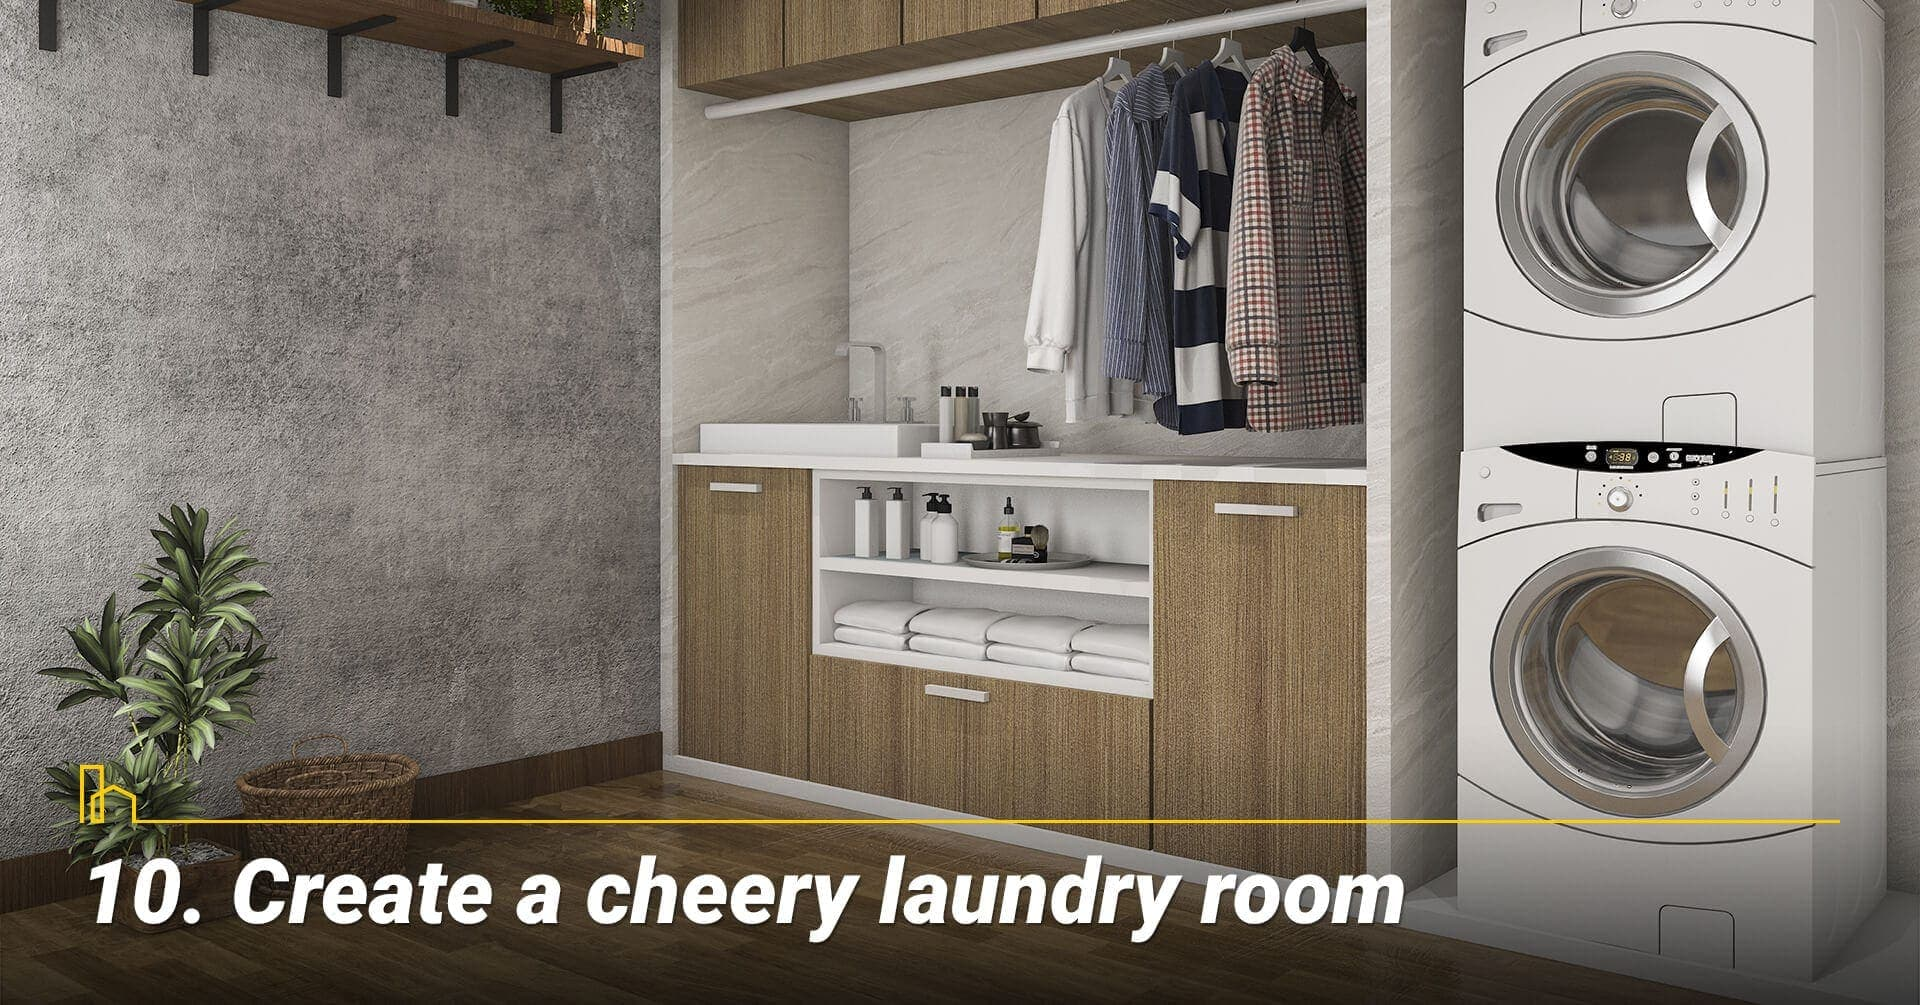 Create a cheery laundry room, organize the laundry room